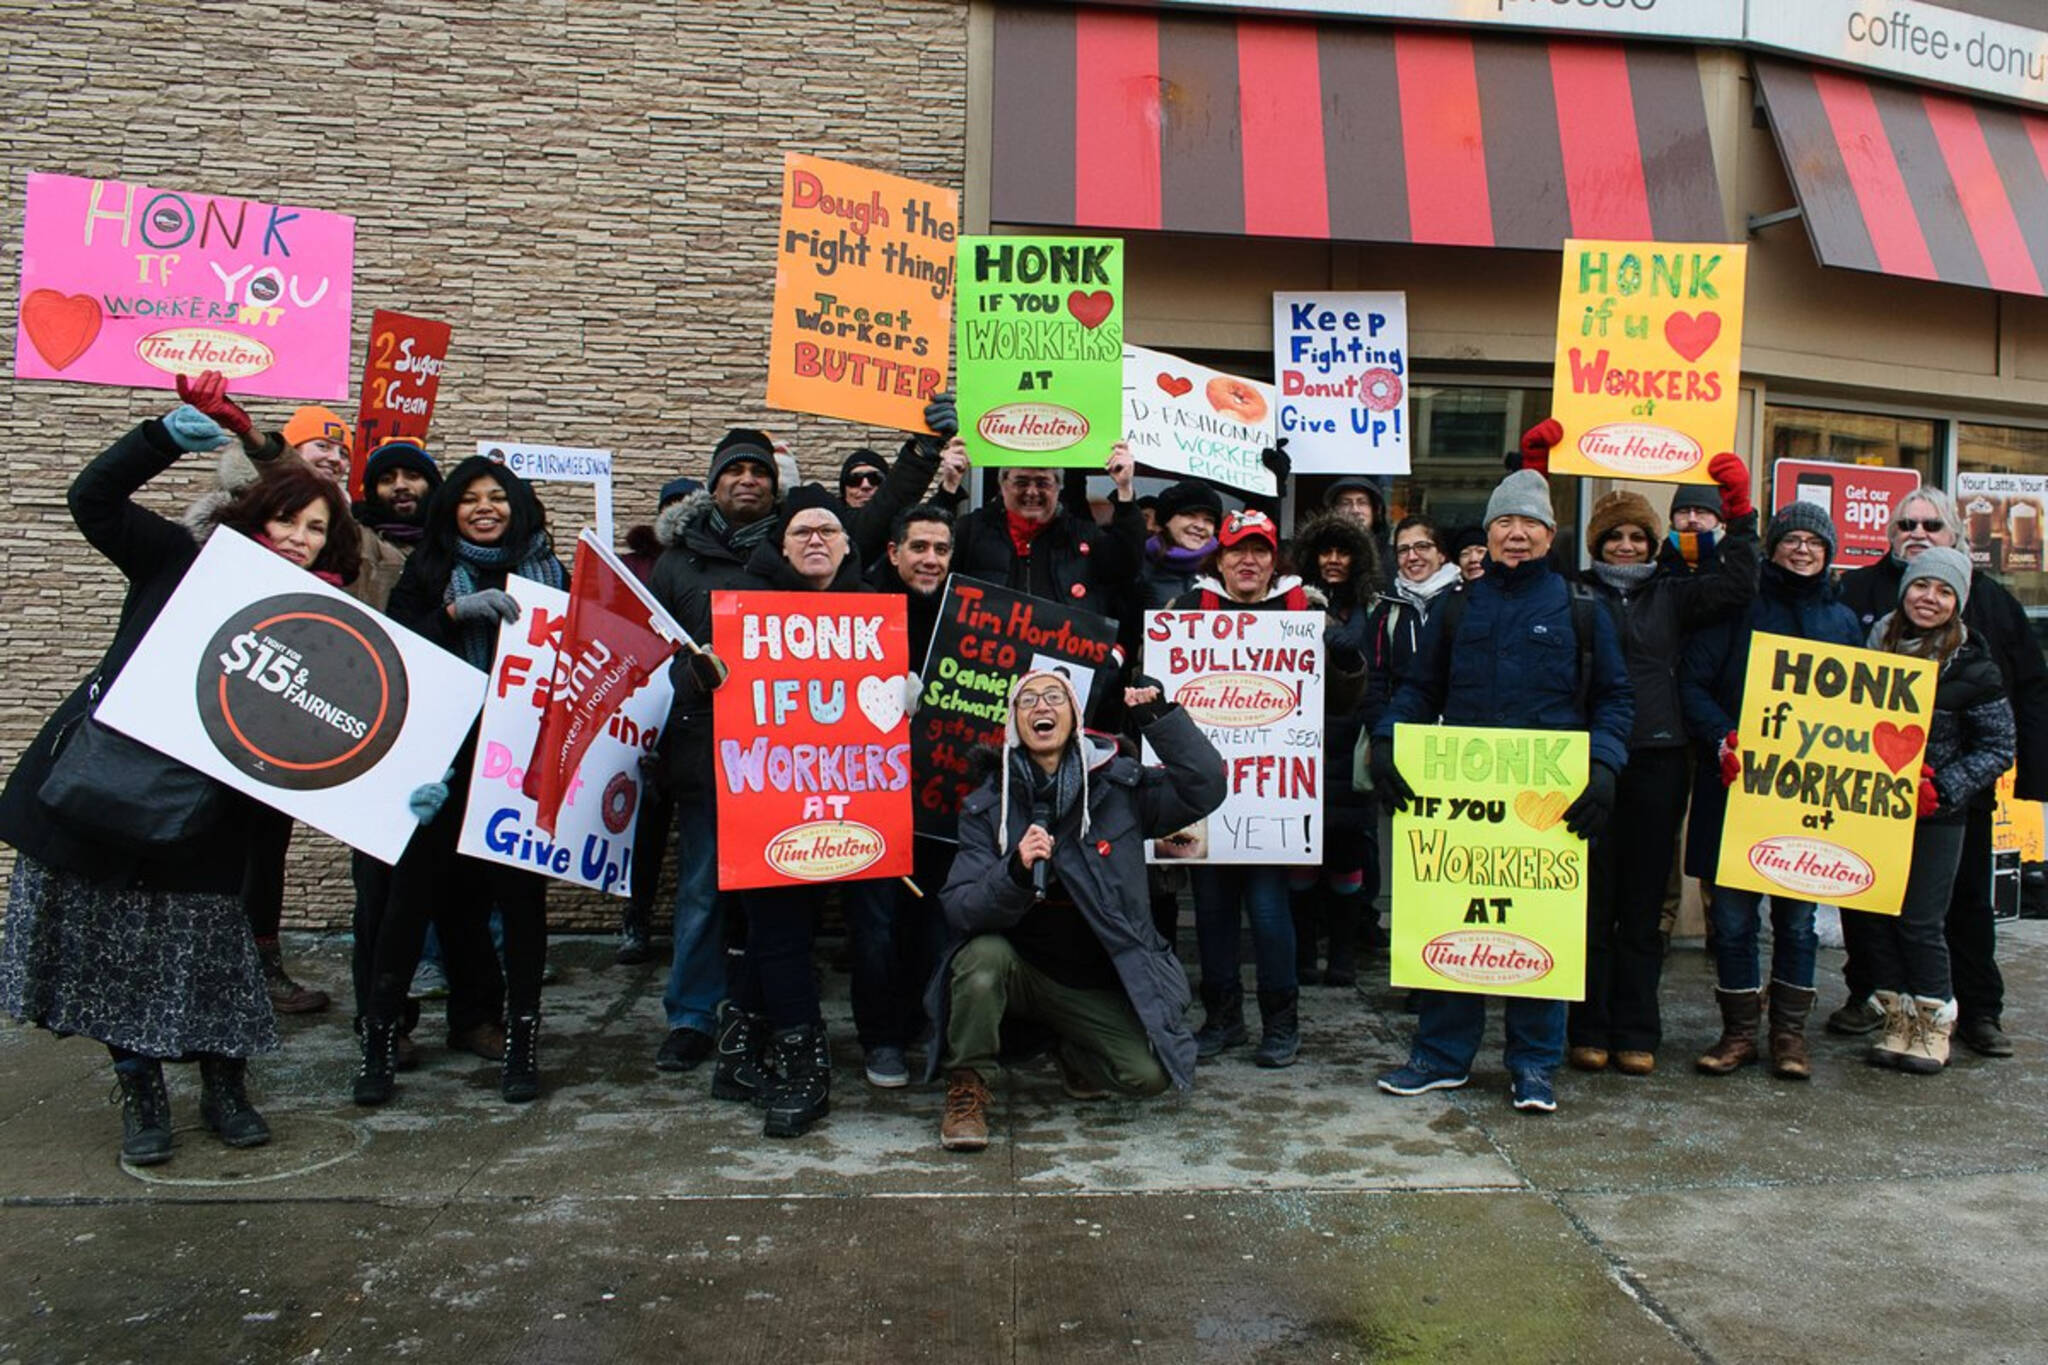 Tim Hortons protests